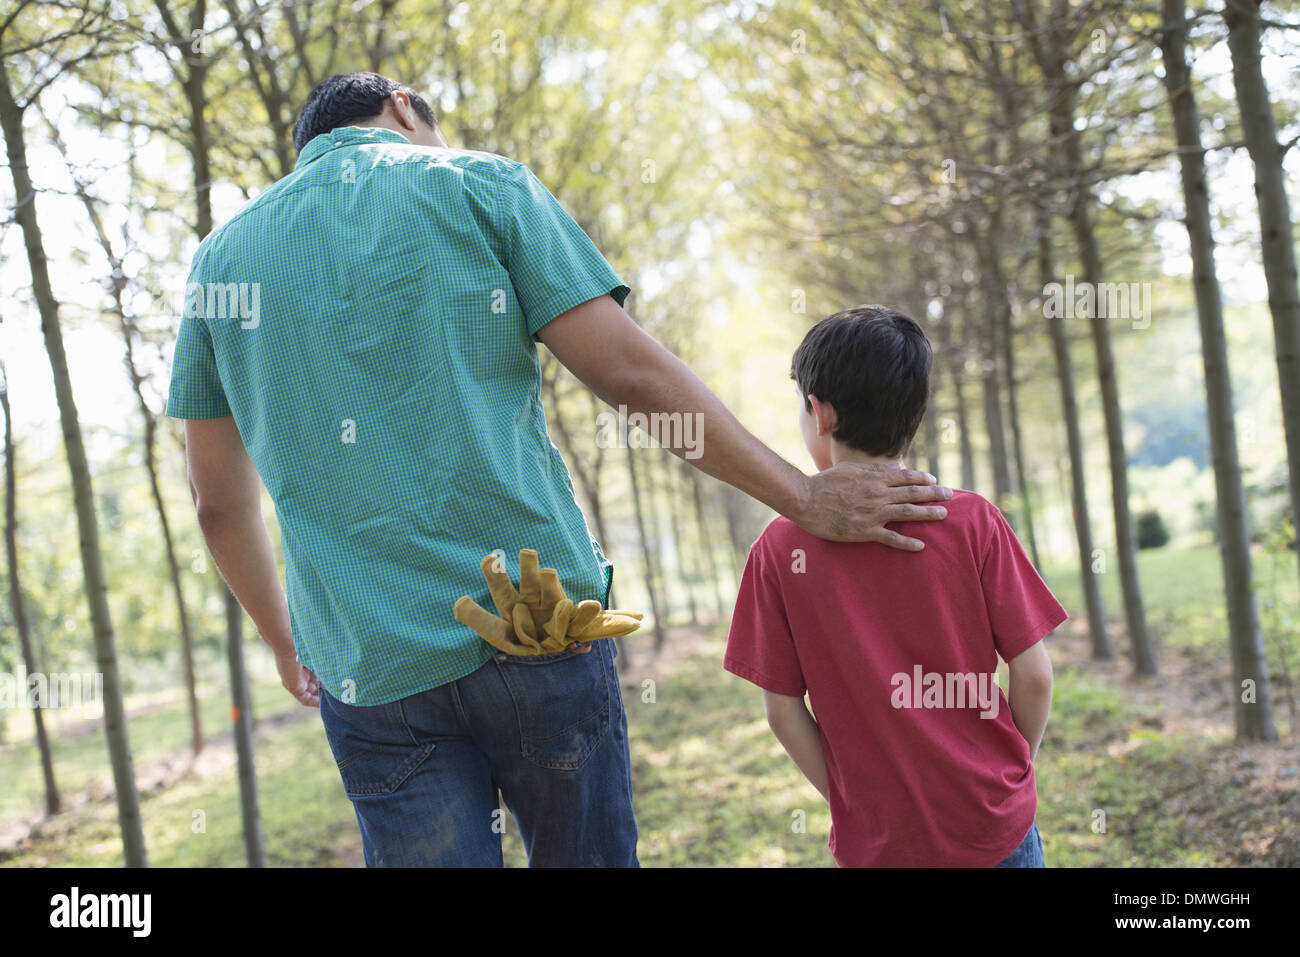 A man and a young boy walking down an avenue of trees. - Stock Image